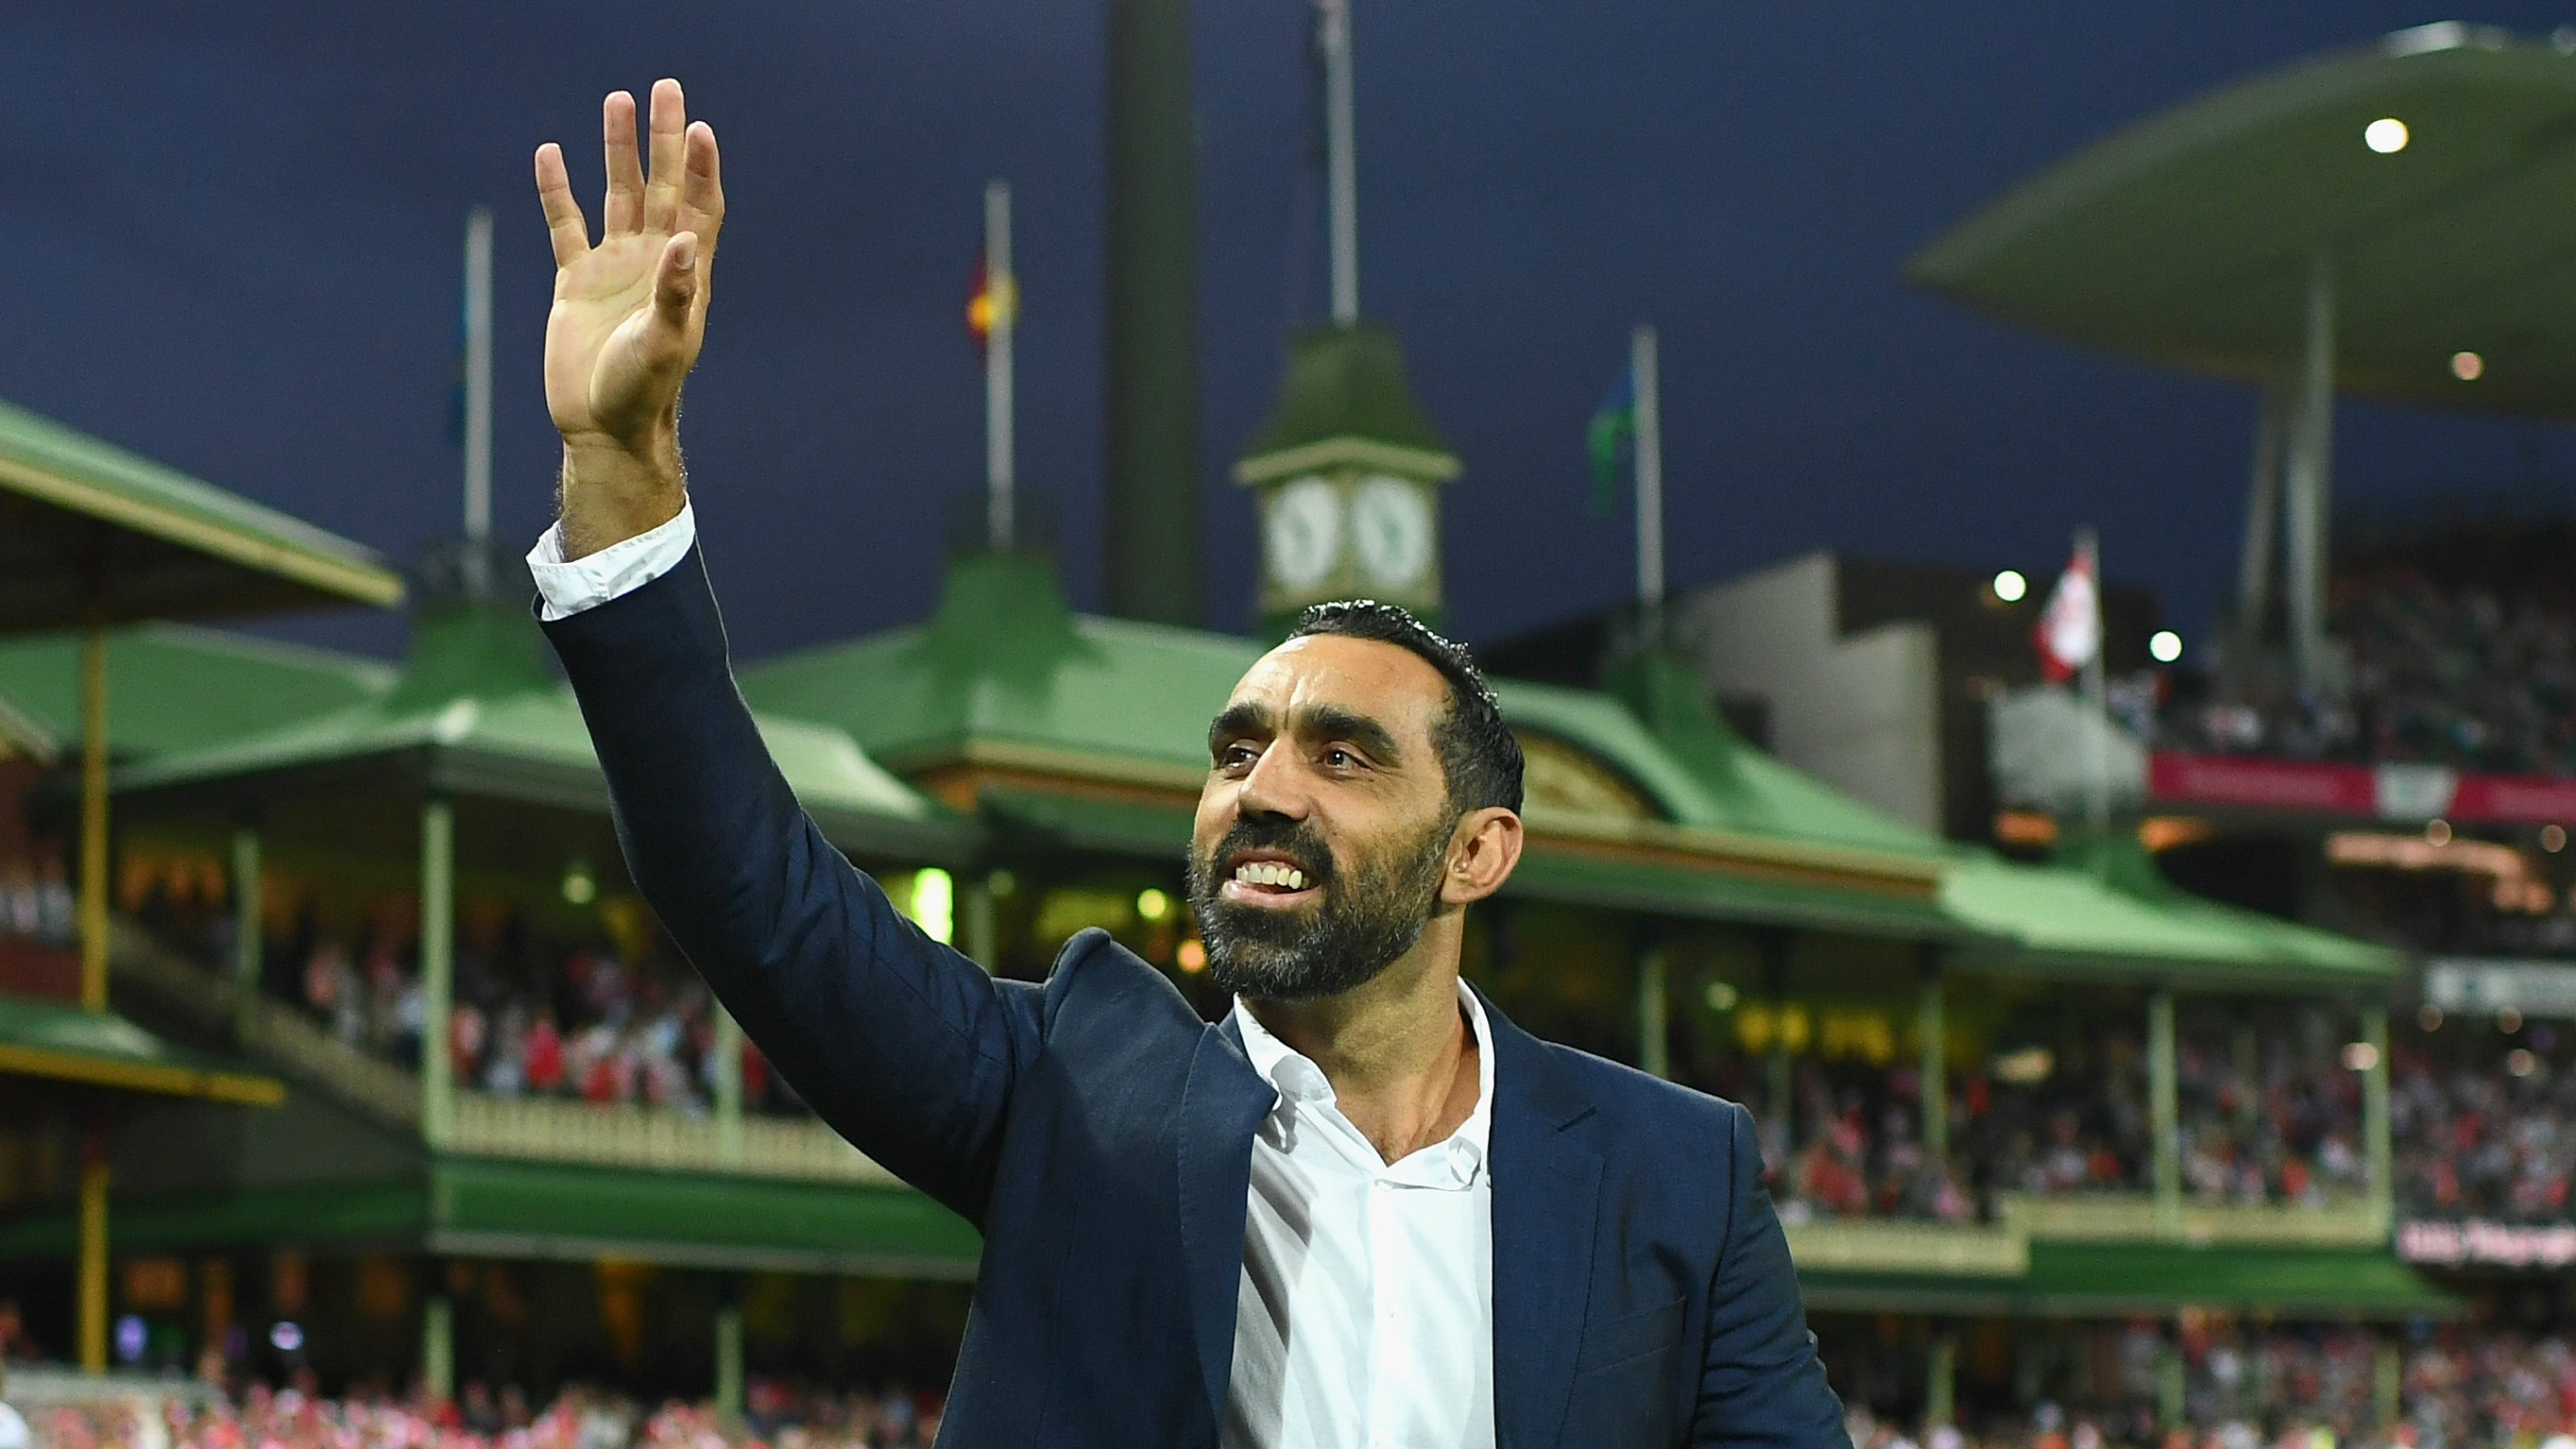 Adam Goodes: The Final Quarter film set to air on Channel 10 in July